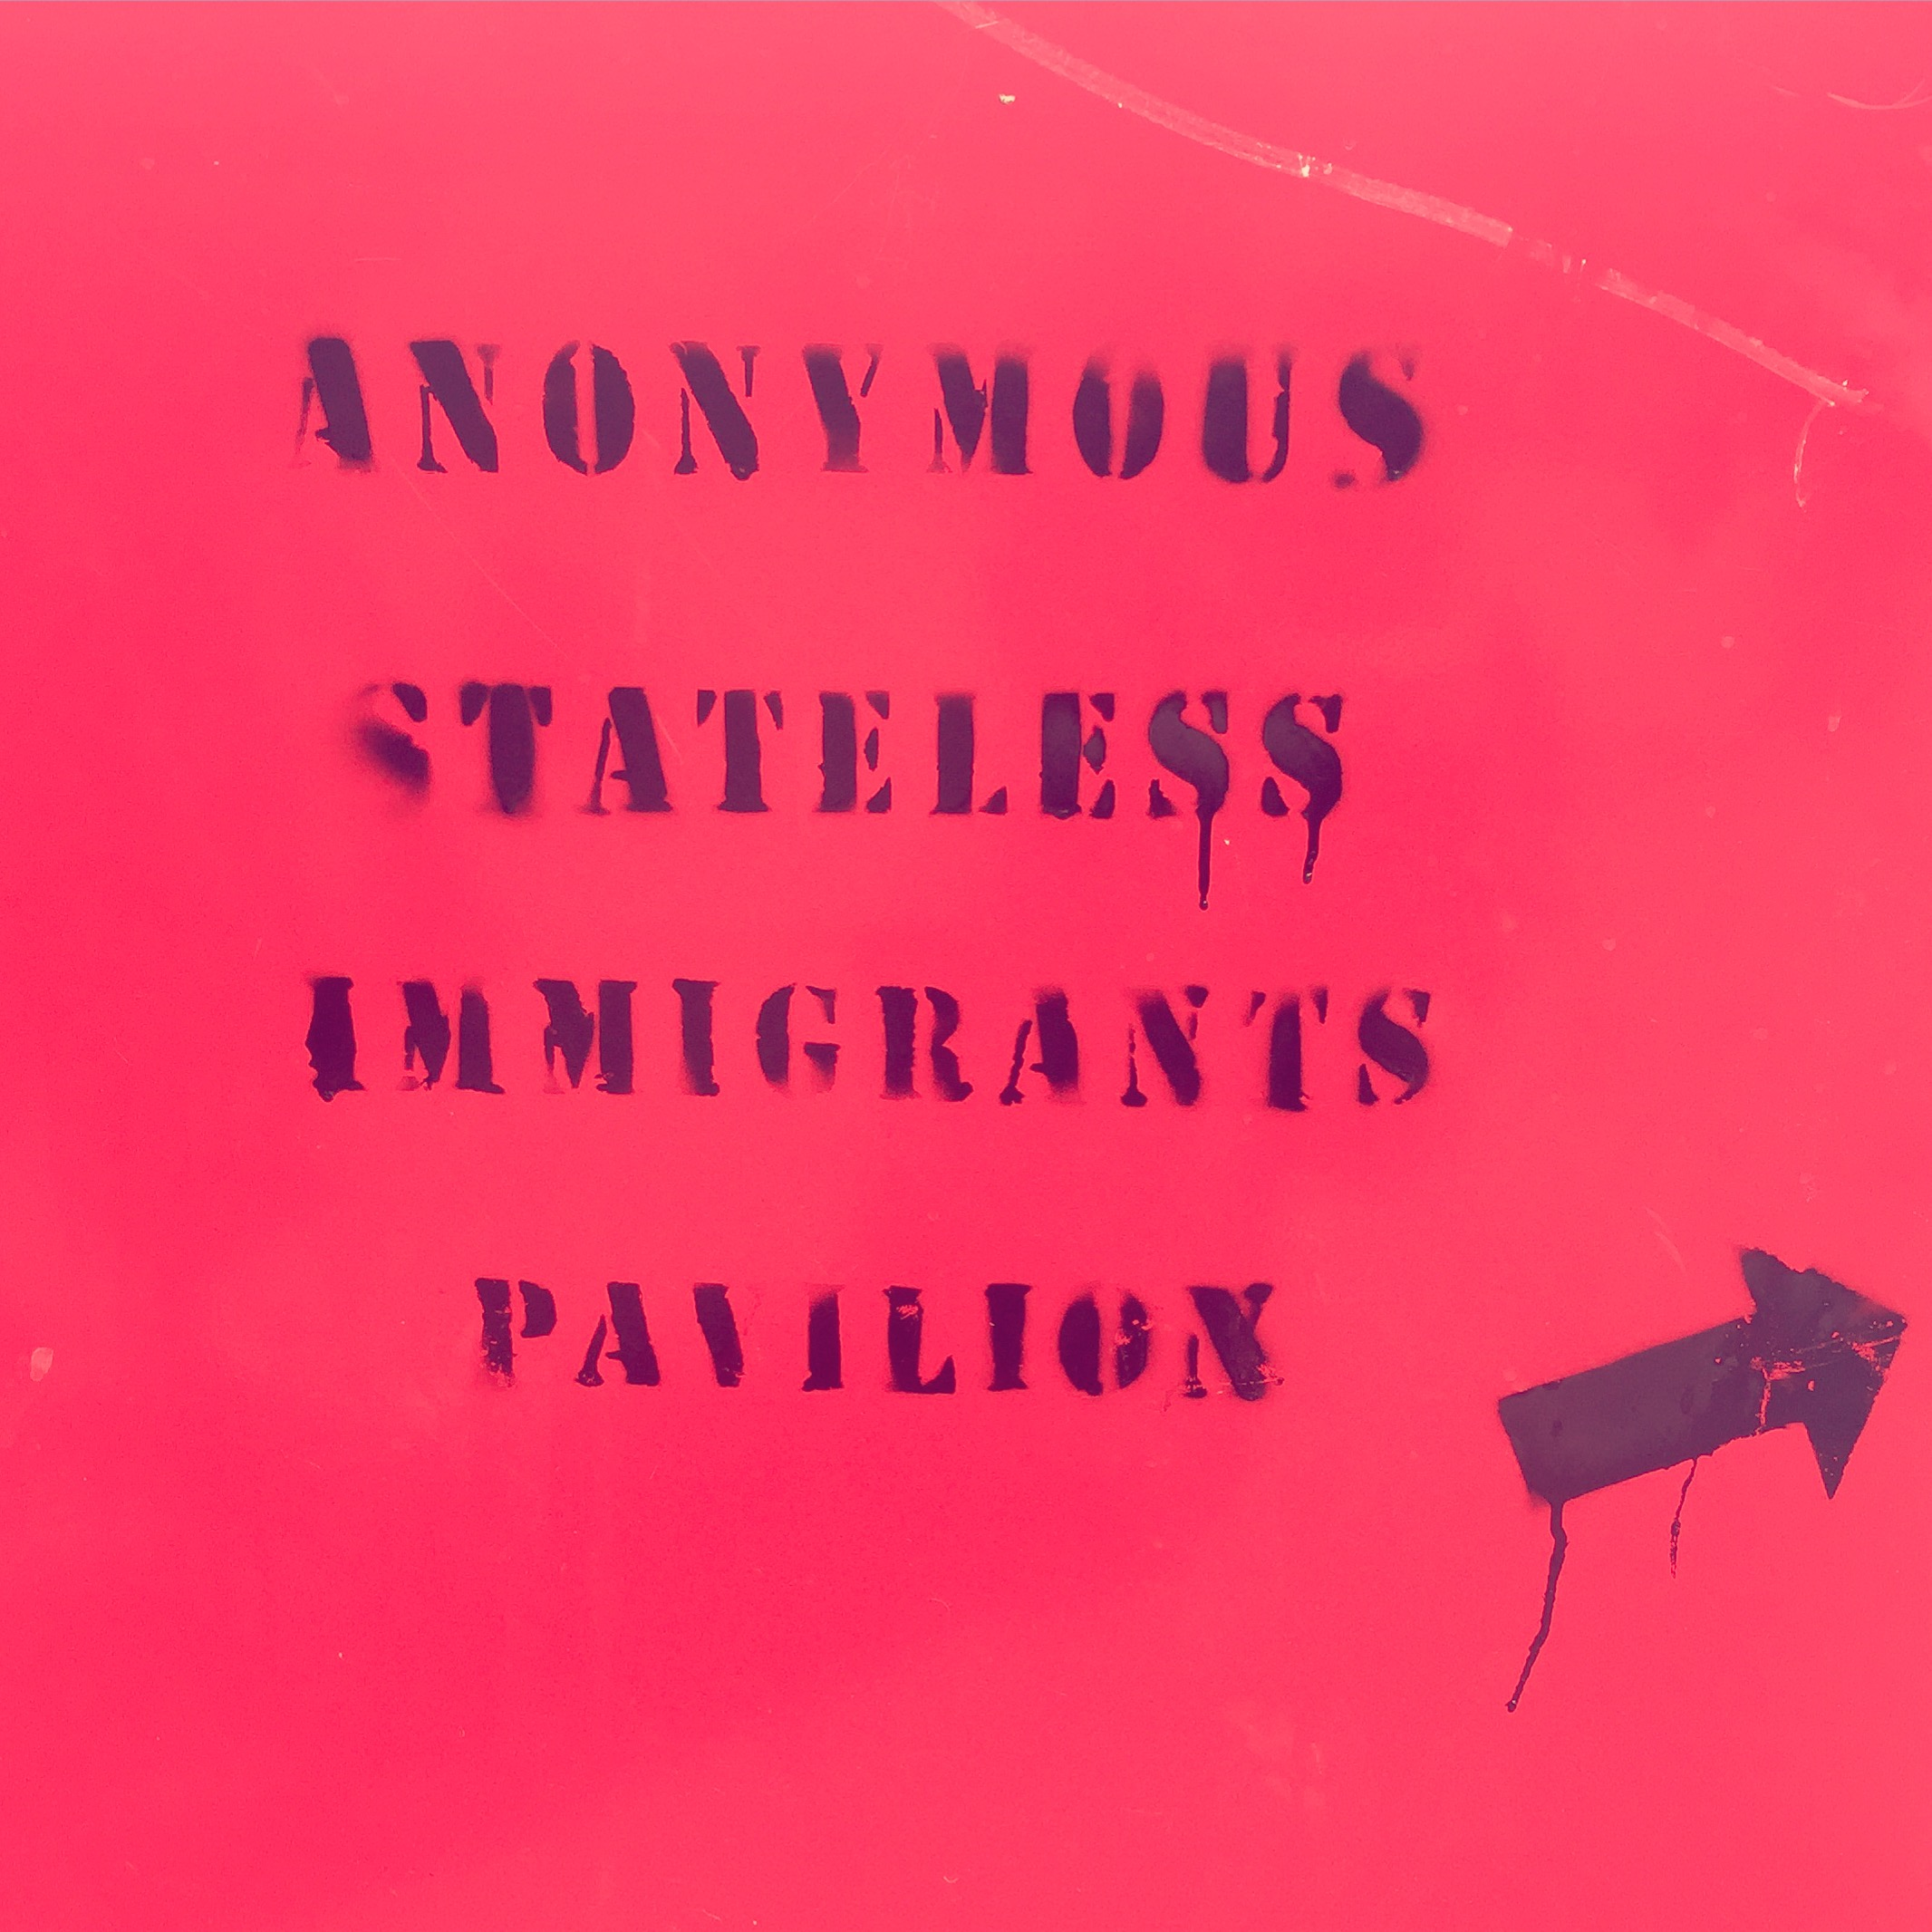 Anonymous Stateless Immigrants Pavilion